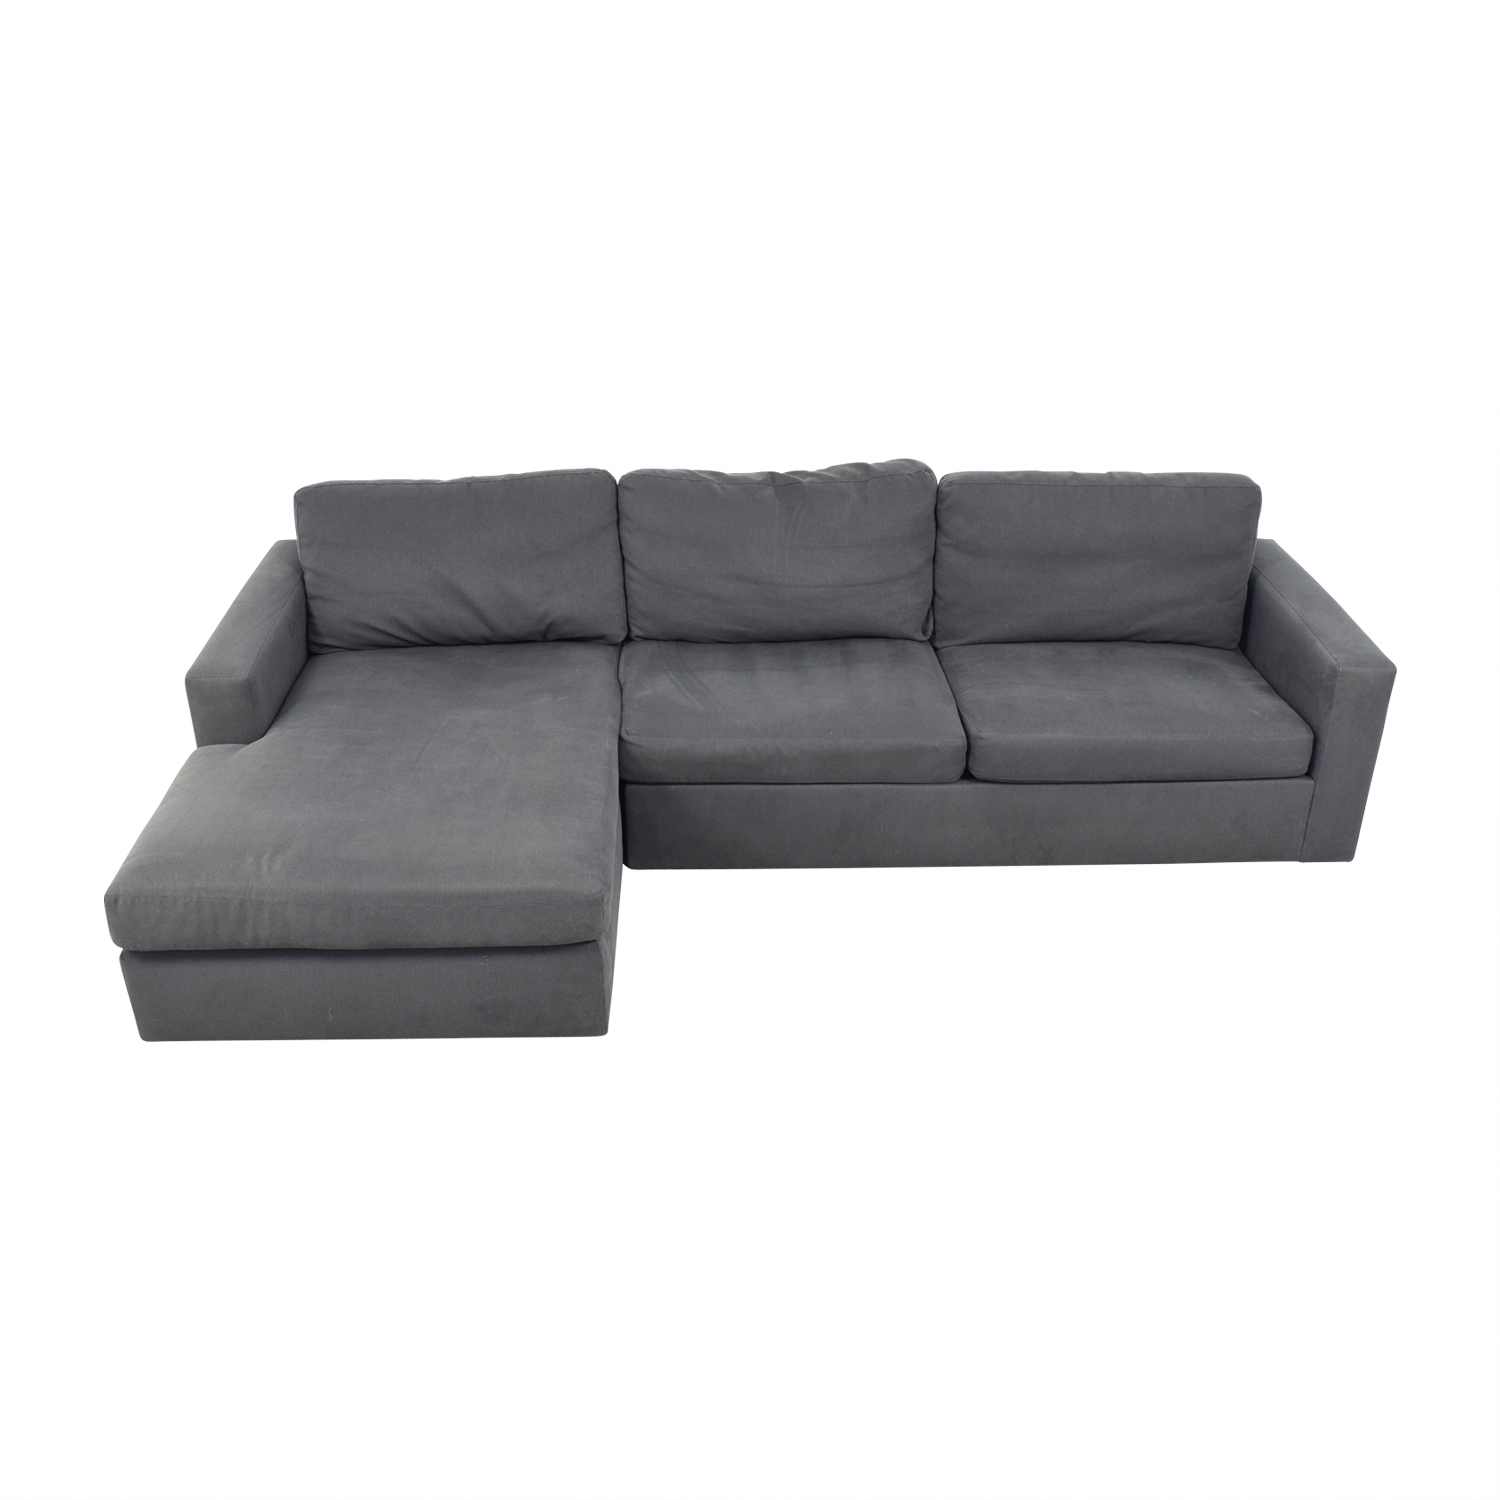 Room & Board Room & Board Taft Custom Grey Left Arm Chaise Sectional Sectionals